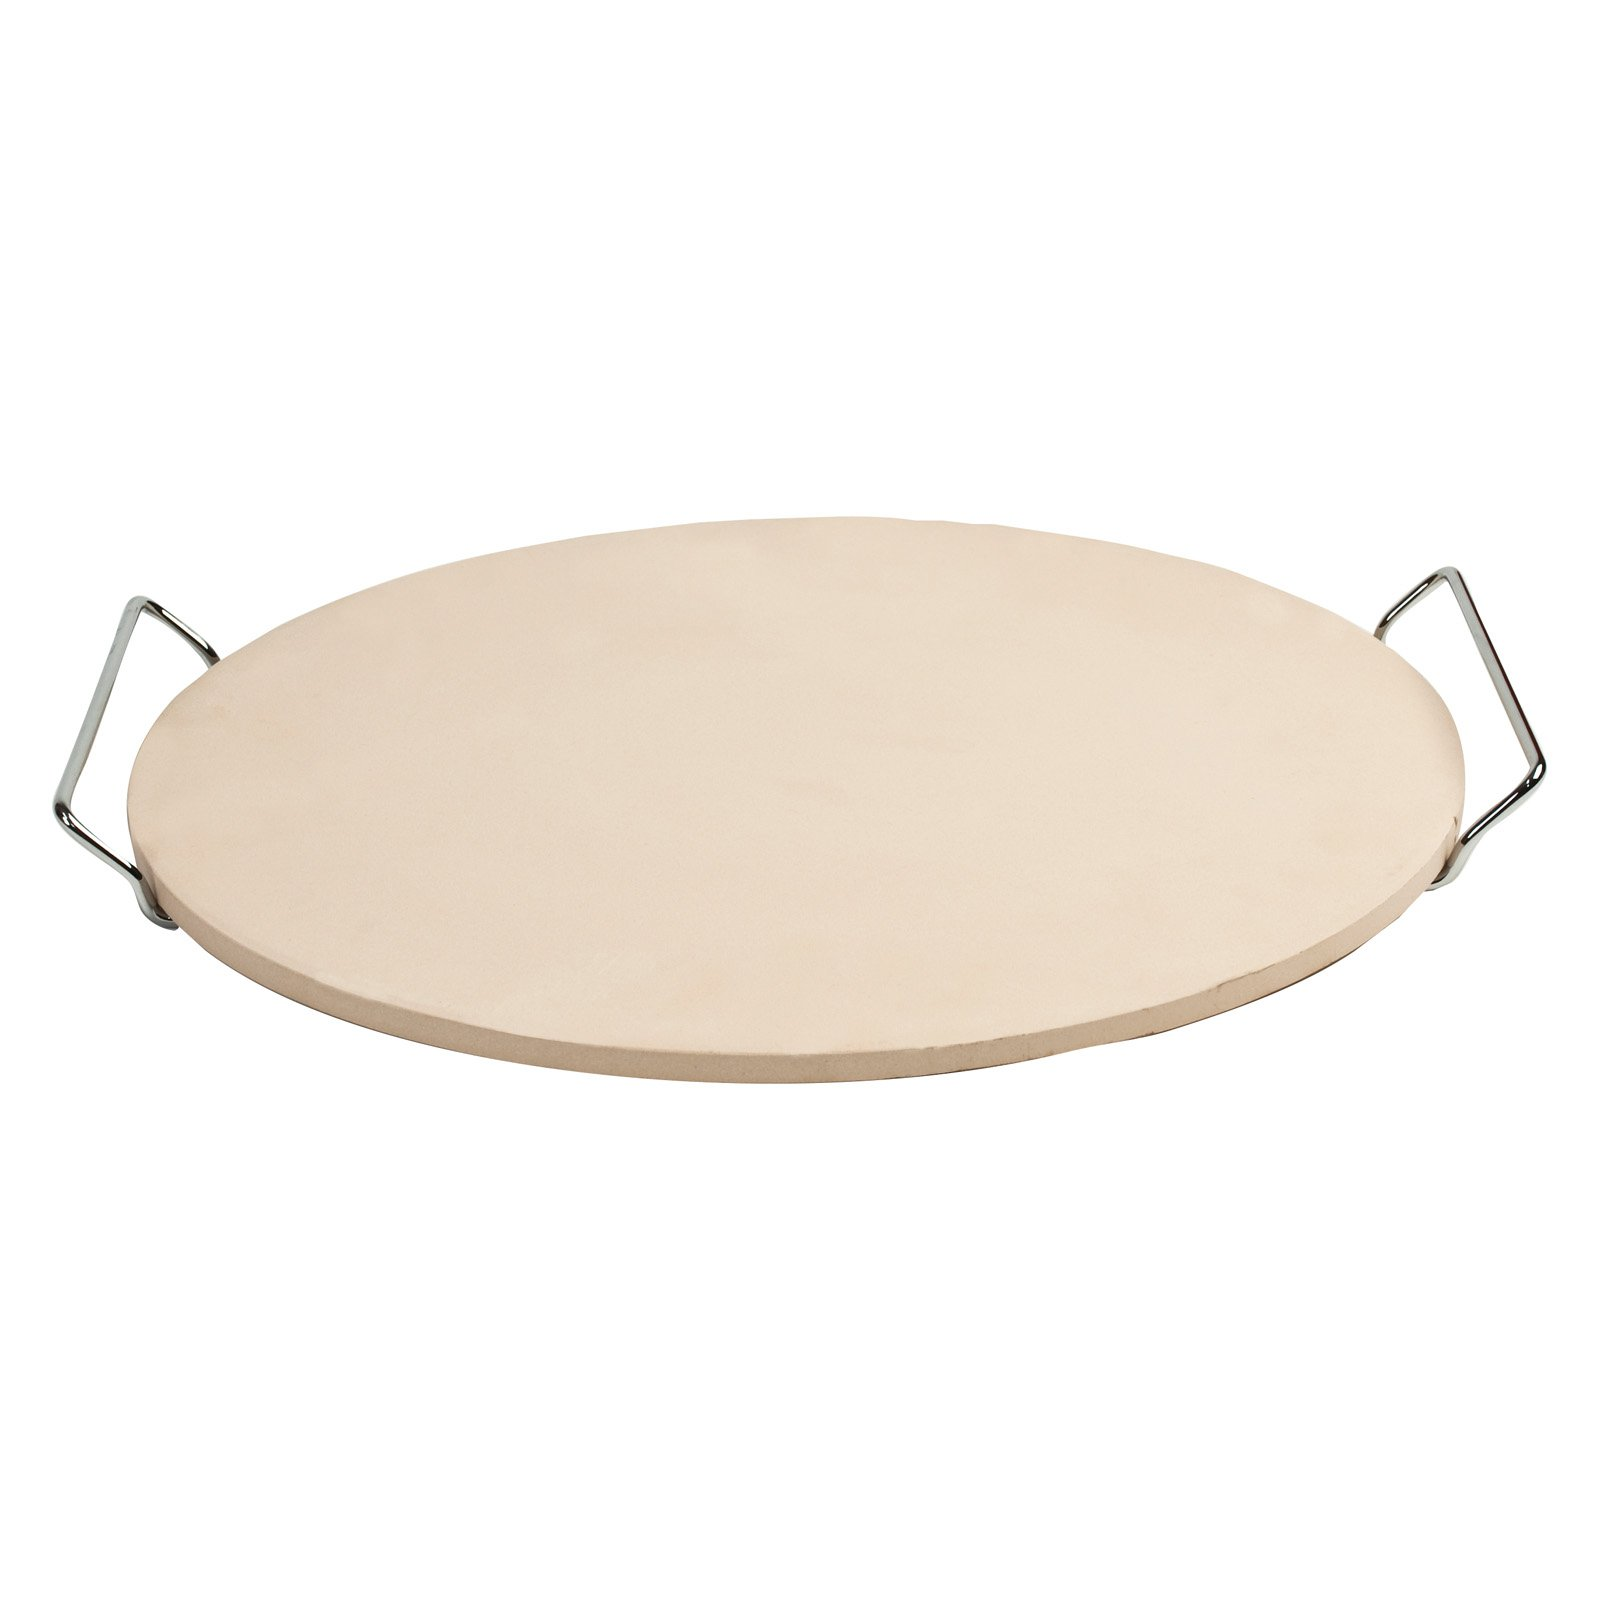 "Pizzacraft 15"" Round Ceramic Pizza Stone and Baking Stone with Wire Frame, for Oven,... by The Companion Group"